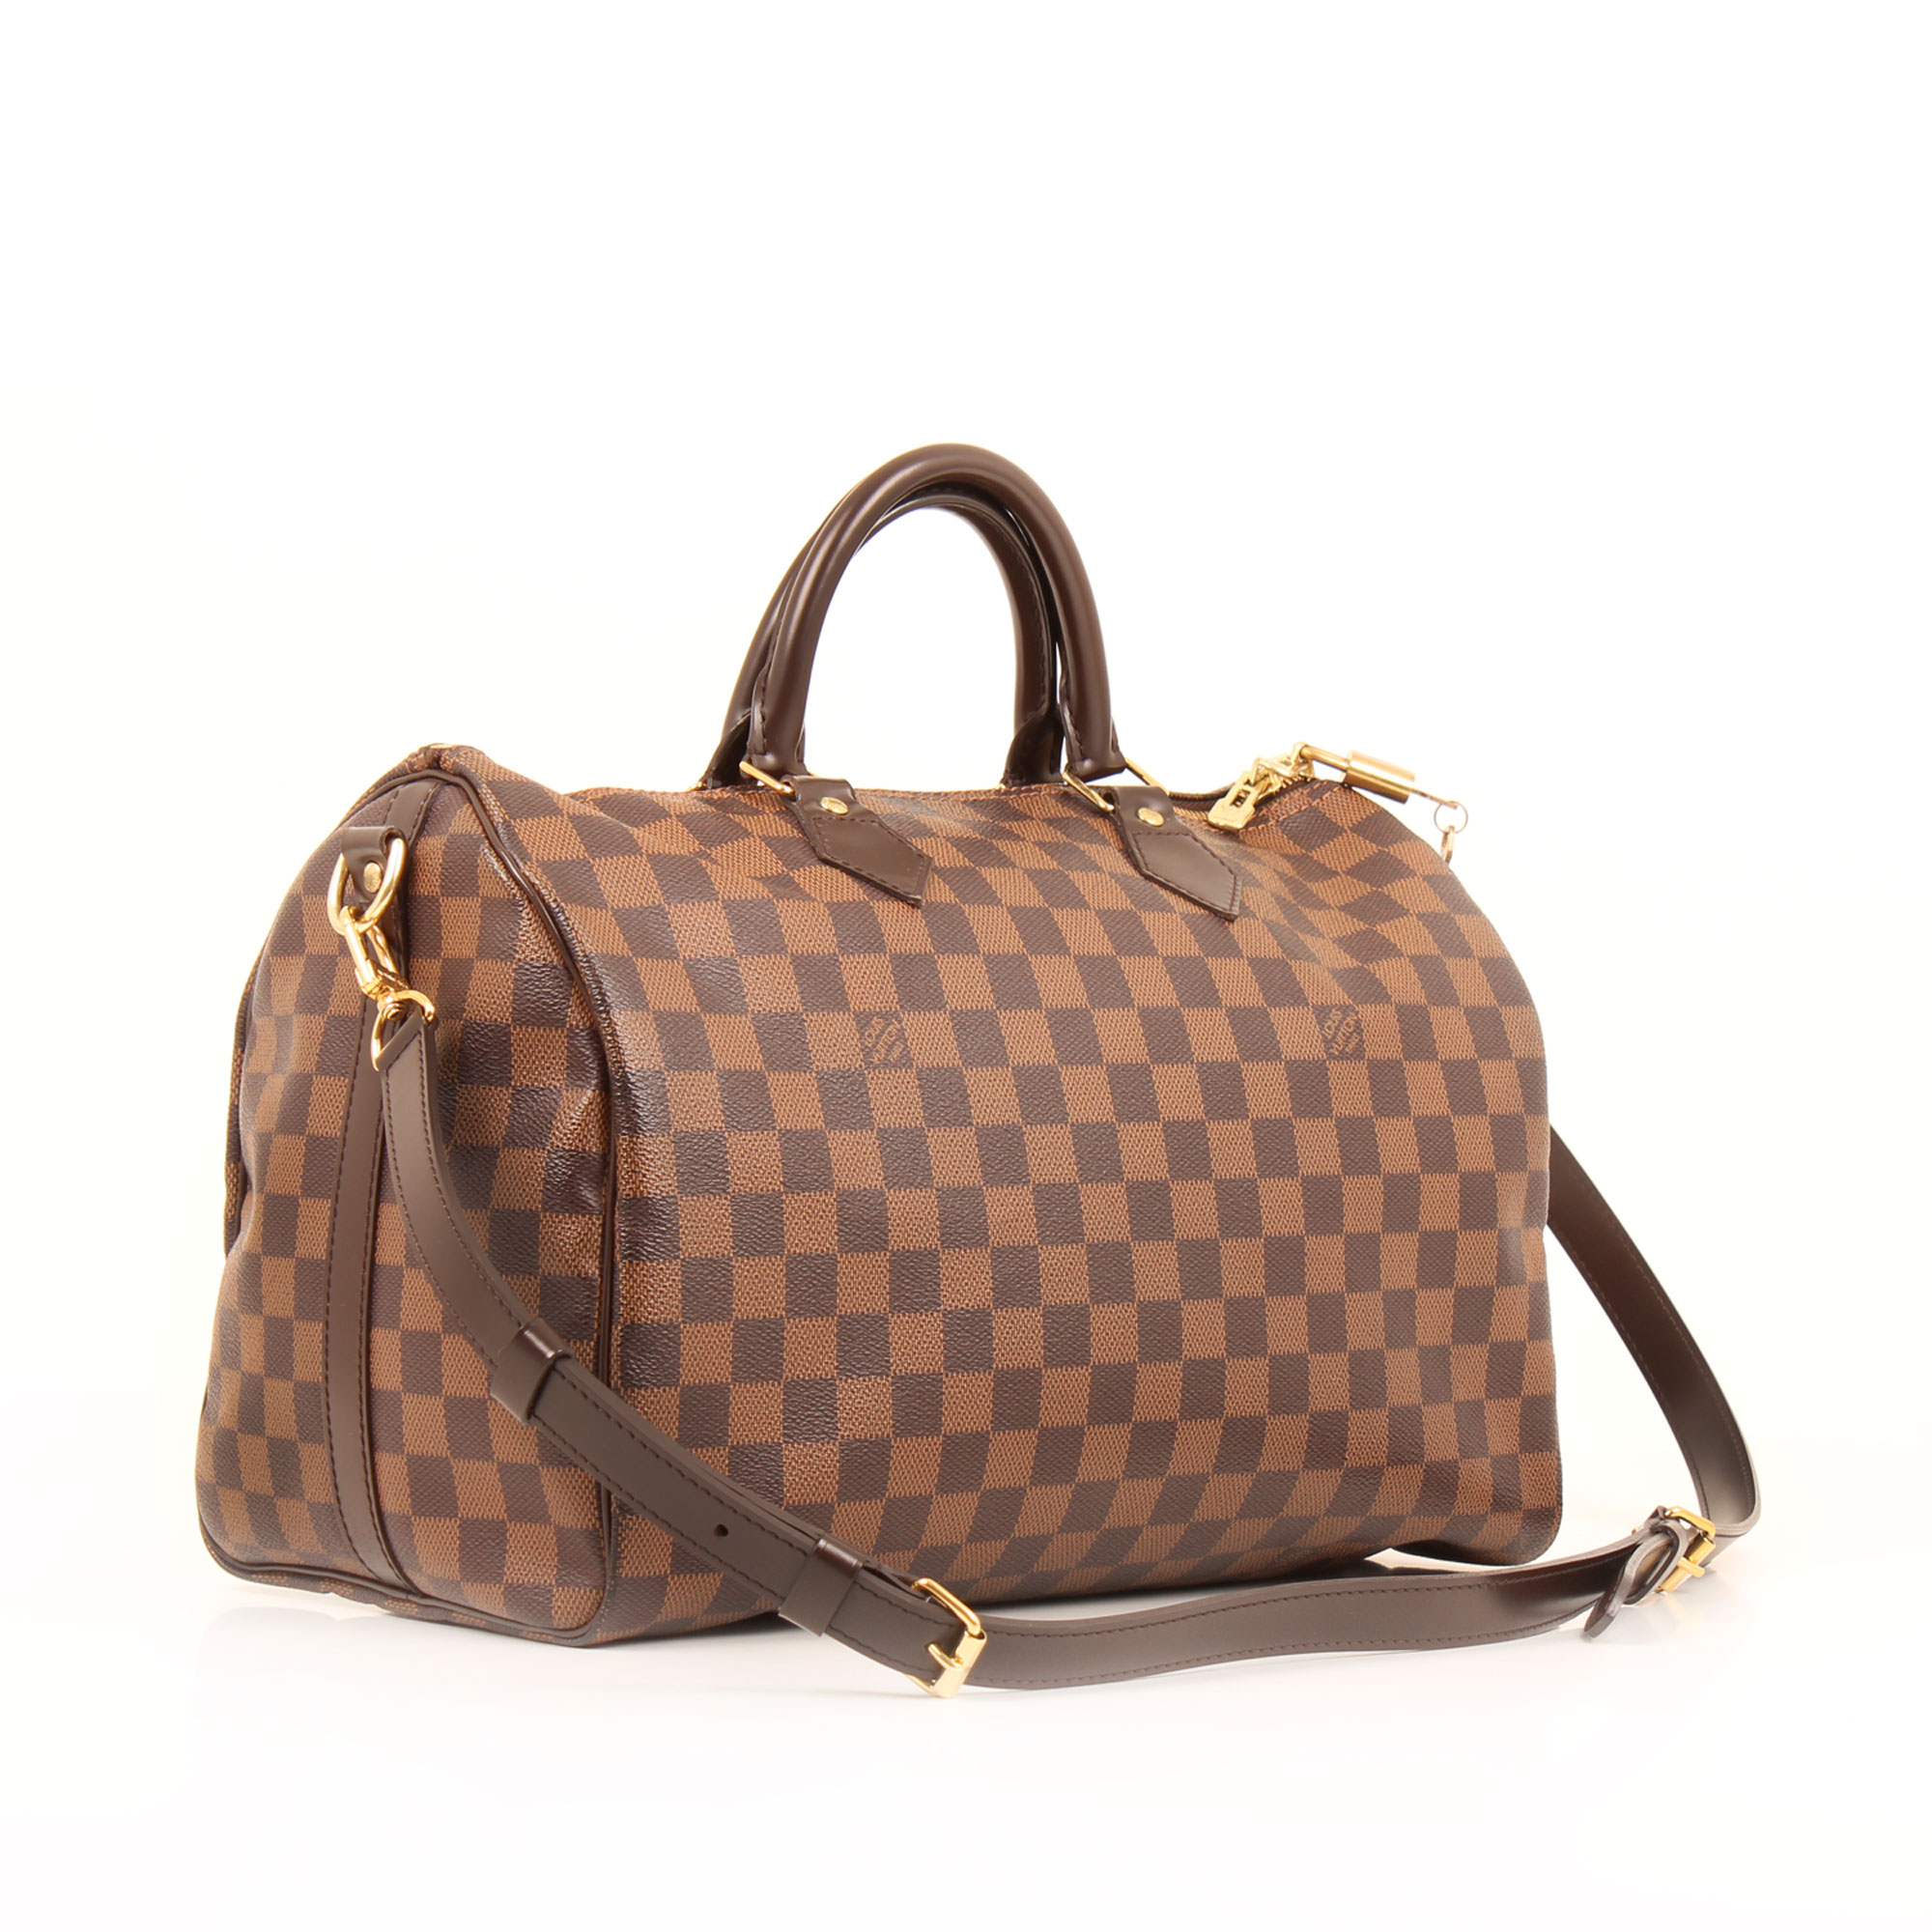 d957e1de5998 General image of louis vuitton speedy 35 bandouliere damier ebene bag